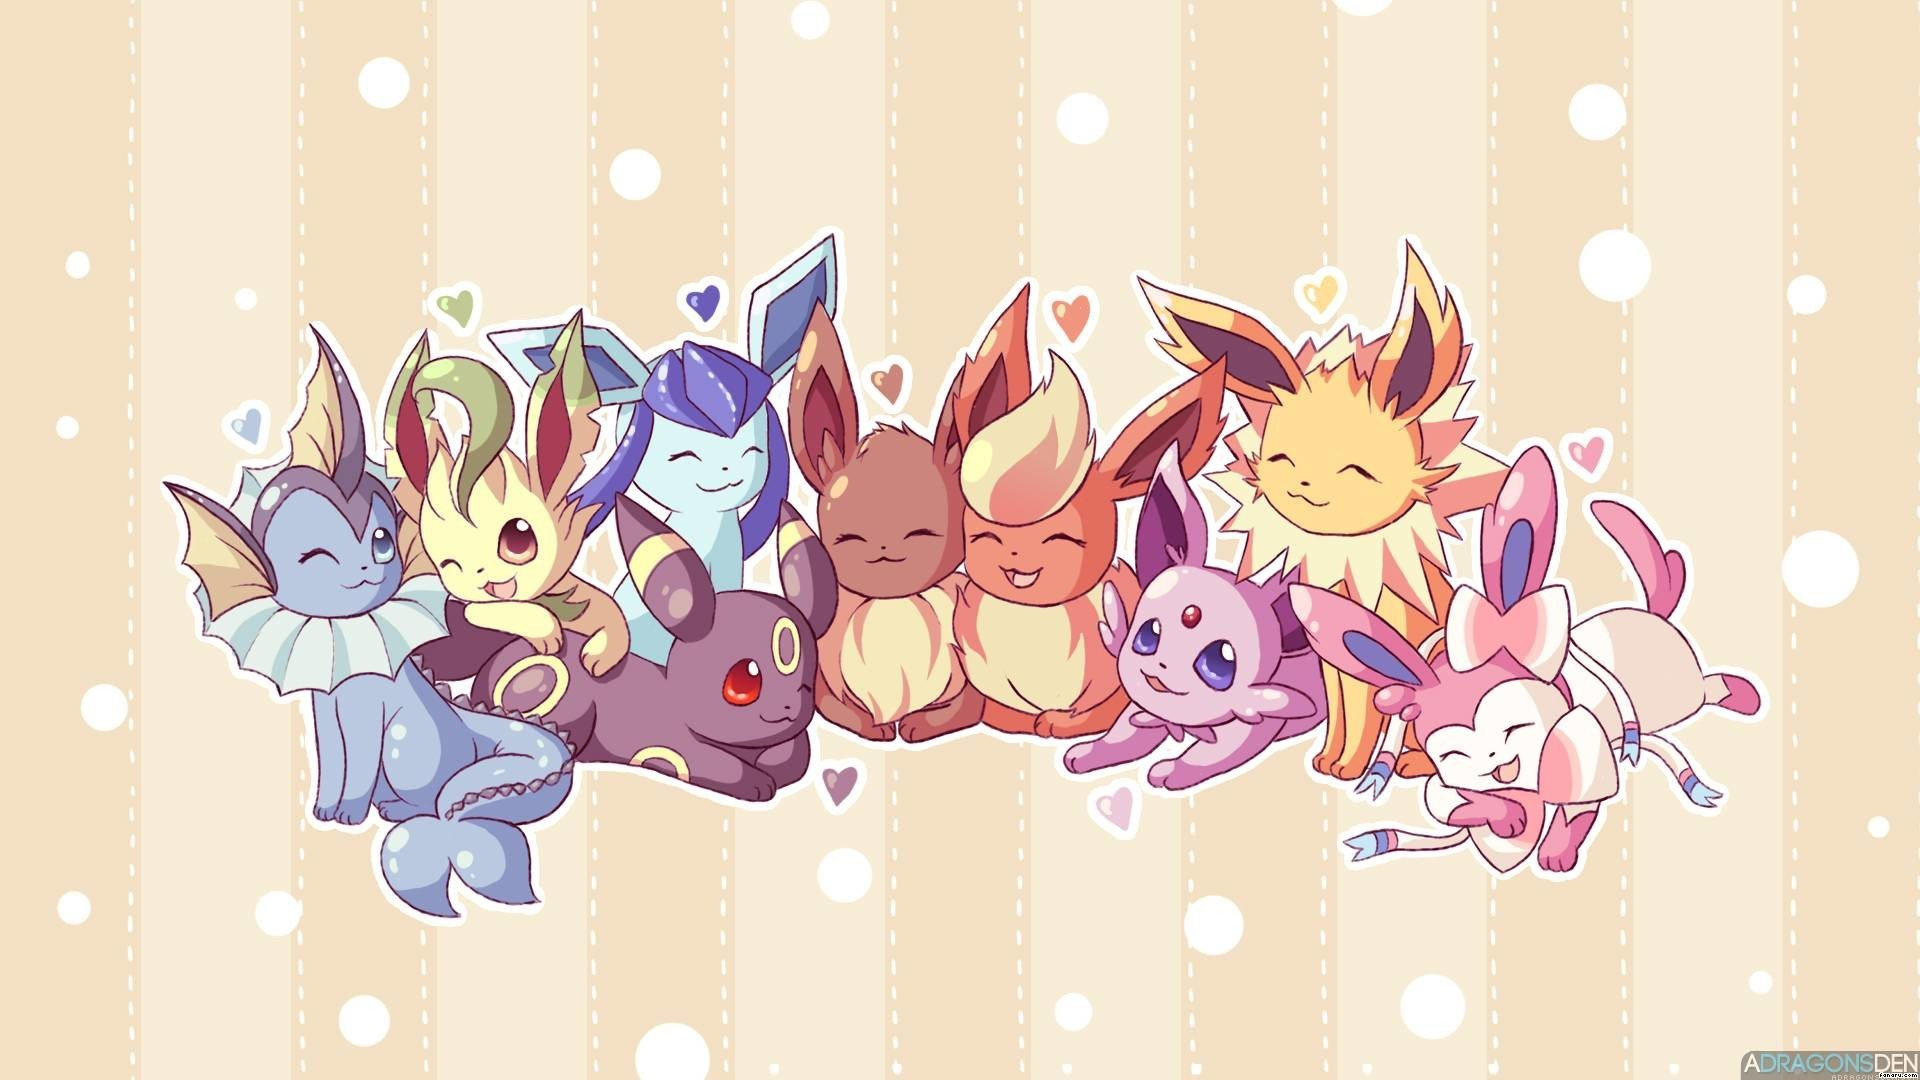 1920x1080  Cutest Pokemon images Cute Pokemon Wallpaper HD wallpaper and  background photos